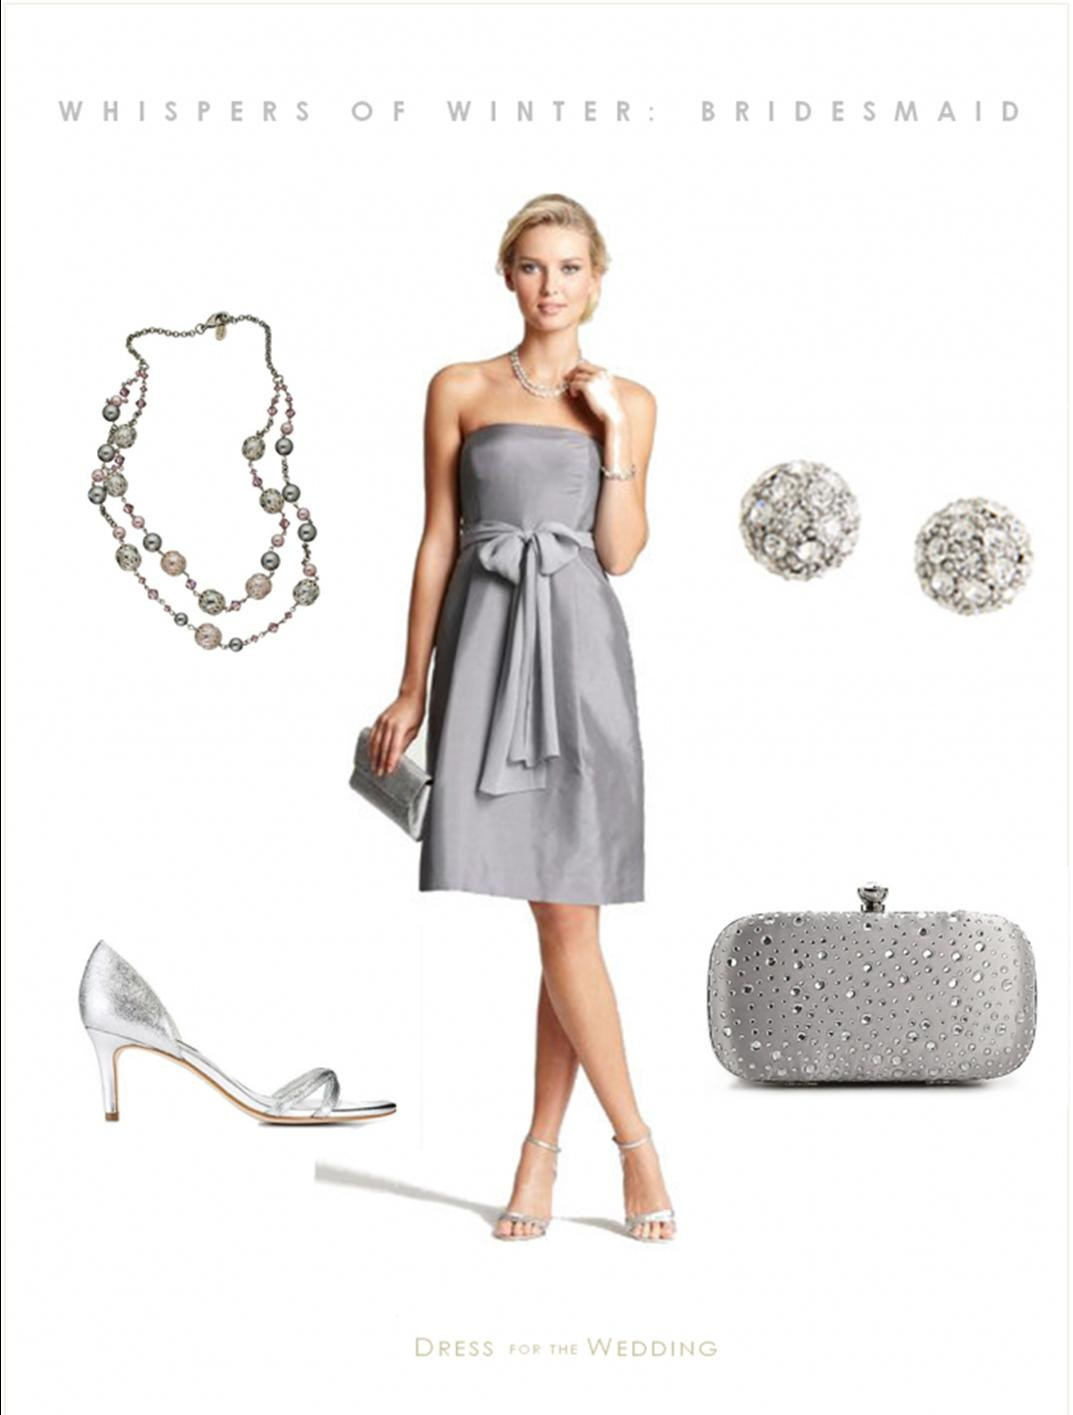 Live eventfully dress to be wednesday ann taylor medium grey silk dupioni strapless bridesmaid dress two layer gunmetal drape necklace nina kendahl genuine crystal pave stud earrings lulu ombrellifo Choice Image